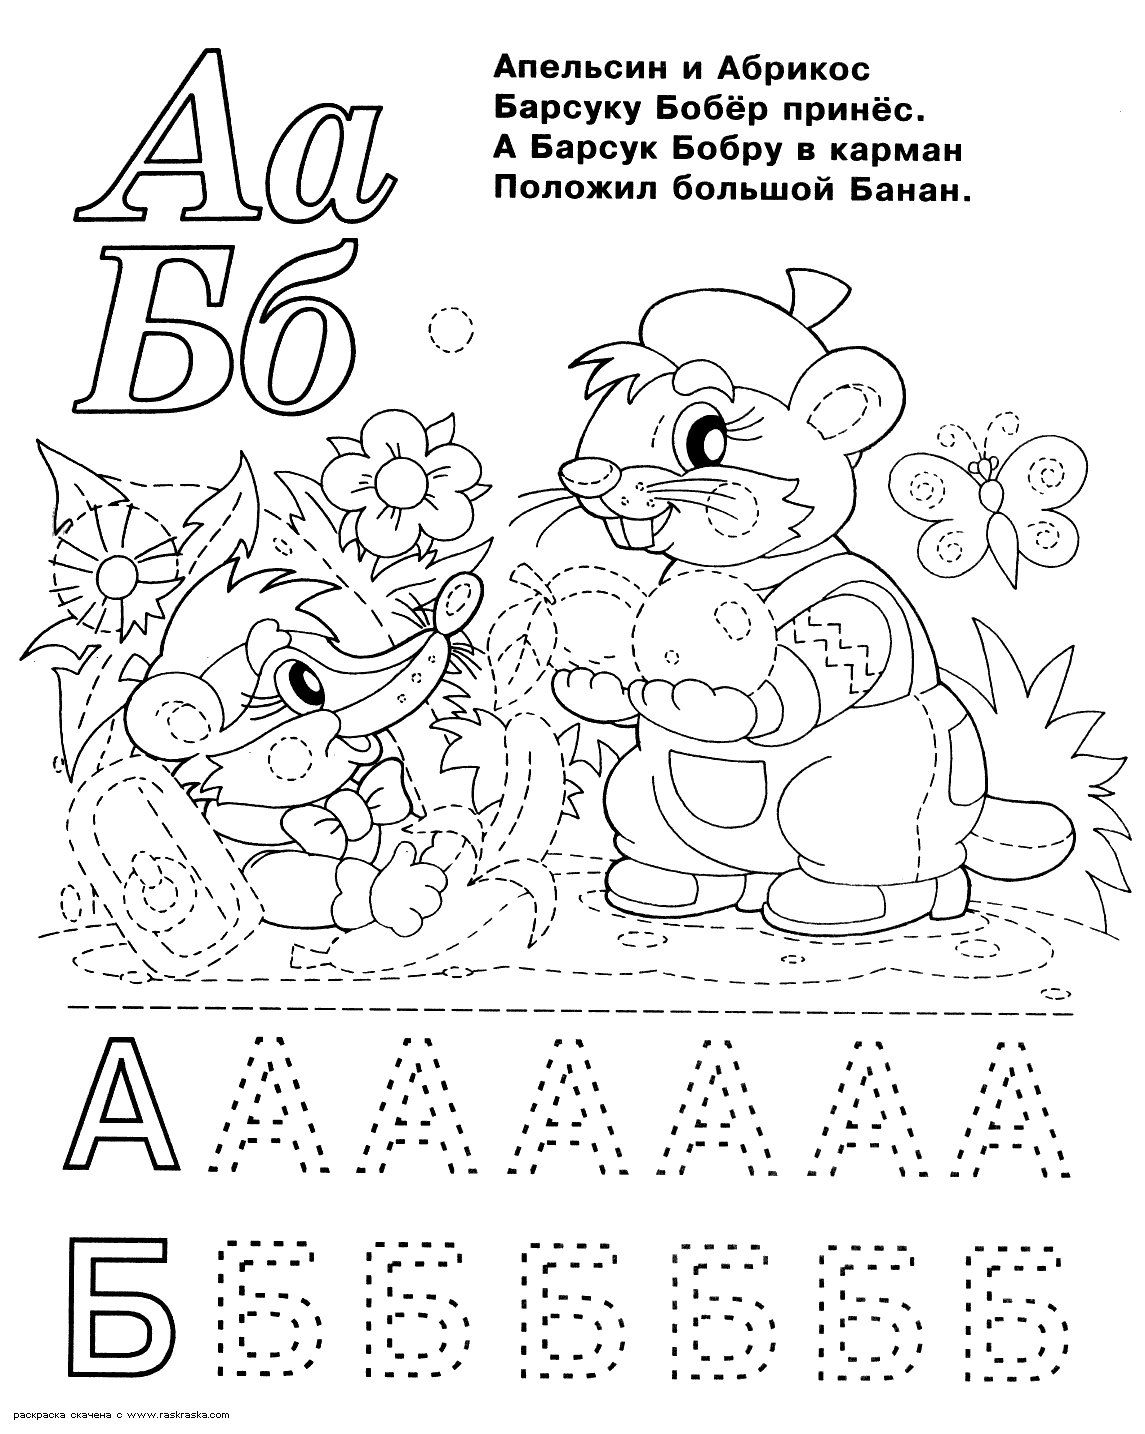 Cyrillic Alphabet Coloring For Children I M Not Finding All Of The Letters But May Eventually